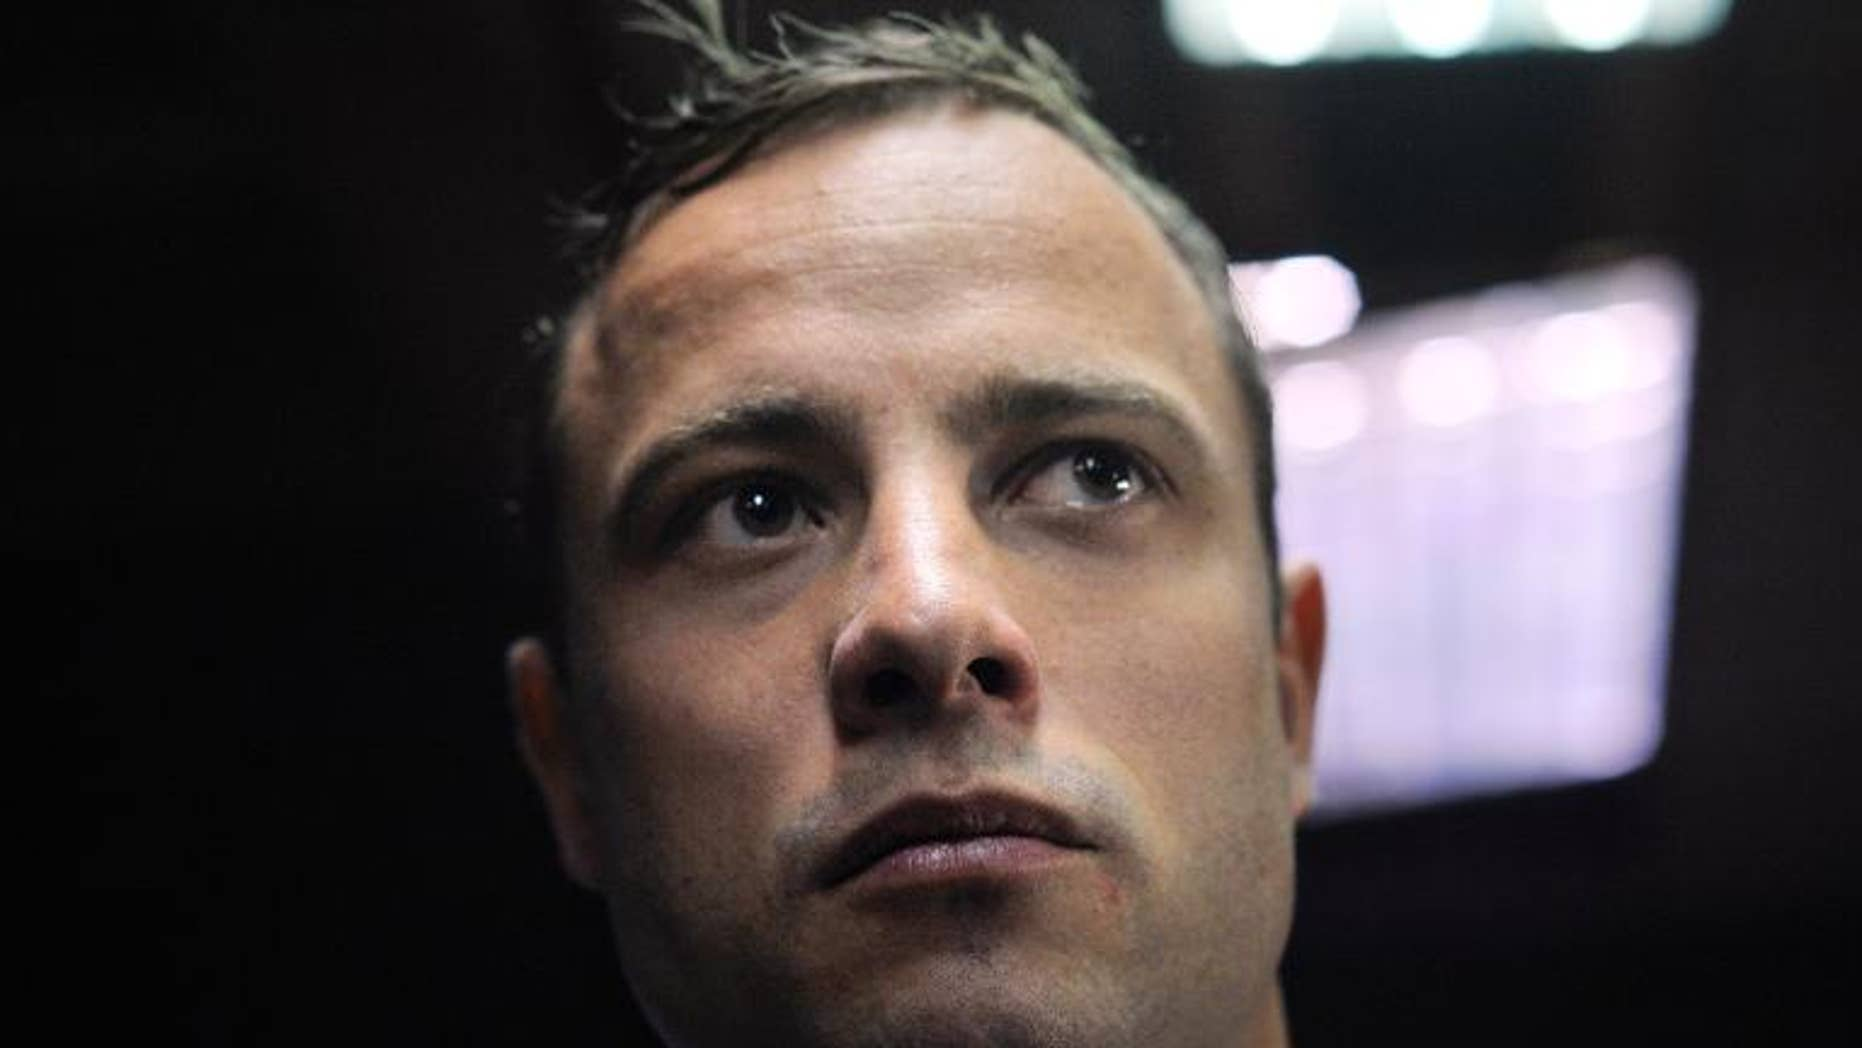 South African Paralympic sprinter Oscar Pistorius stands in the Magistrate Court in Pretoria on June 4, 2013